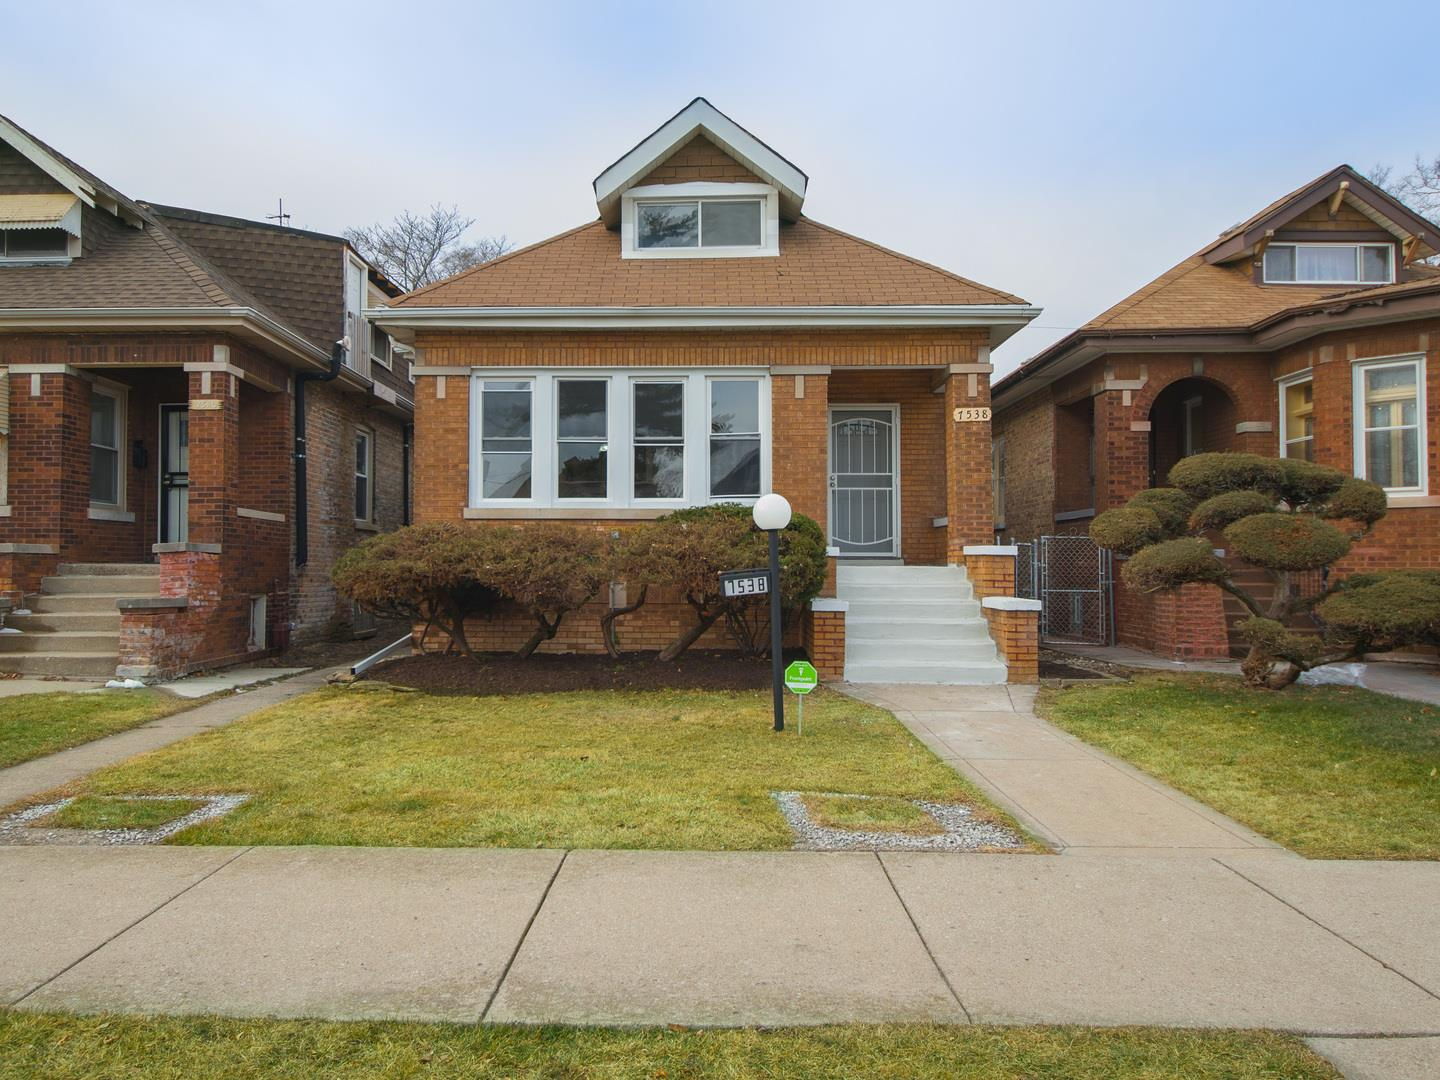 7538 S Wood Street, Chicago, IL 60620 - #: 10972511